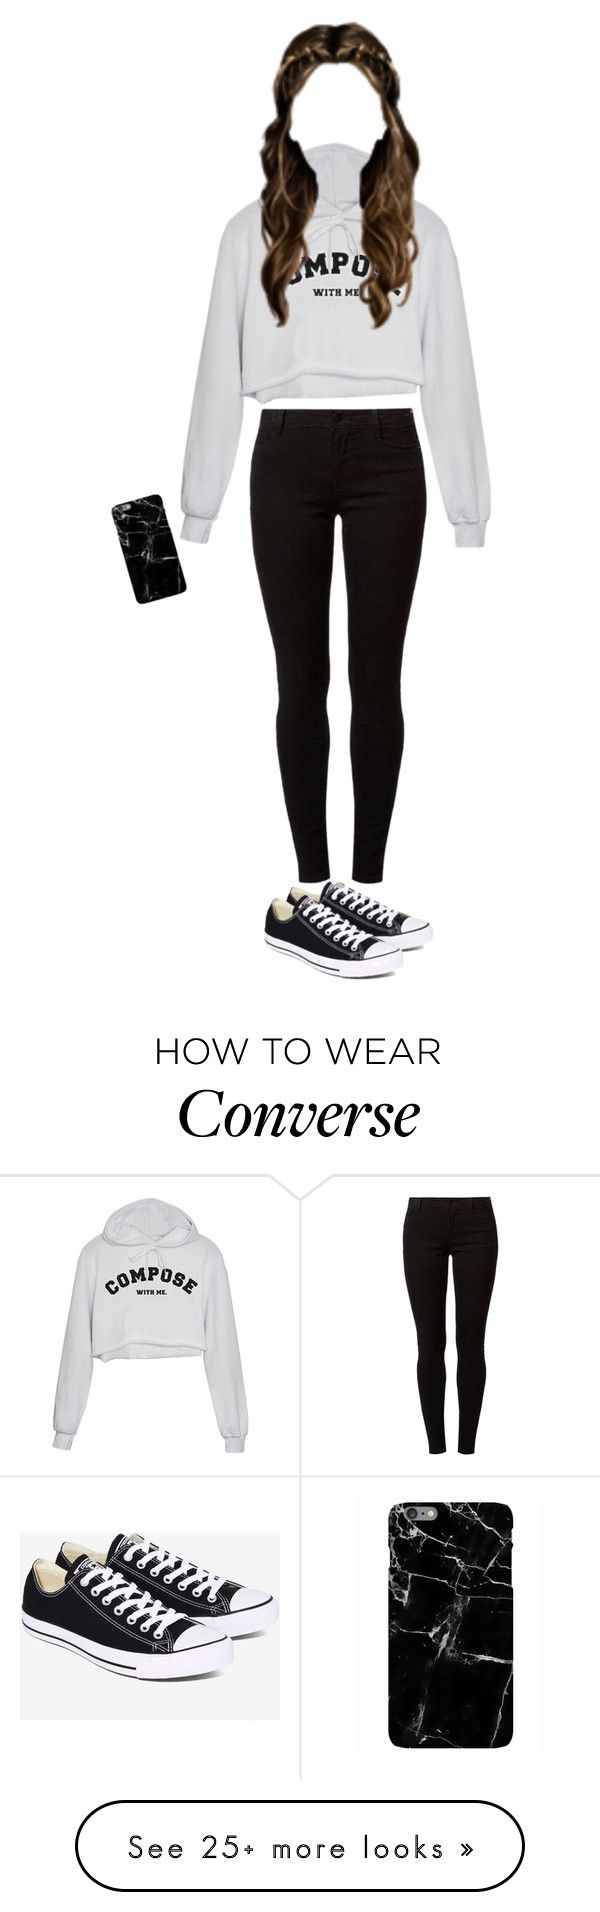 """#26"" by choi-mina on Polyvore featuring Dorothy Perkins and Converse"